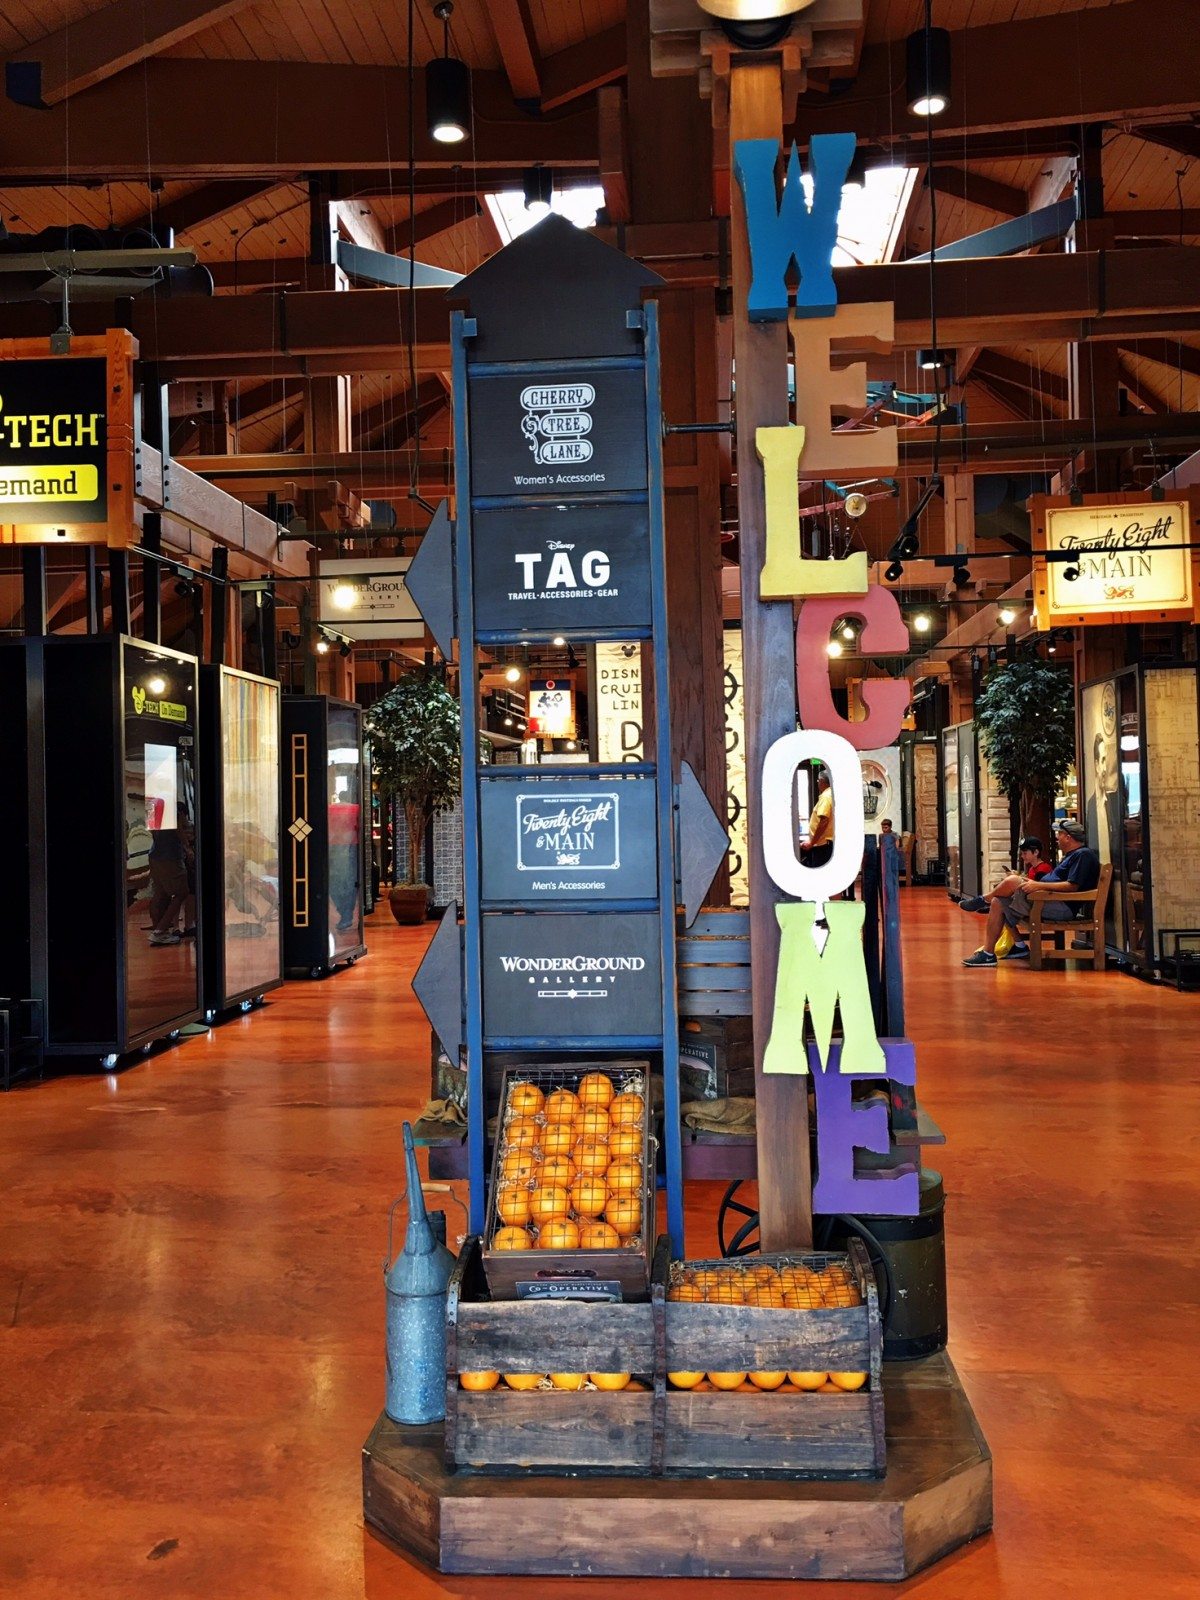 Disney TAG Disney Springs Walt Disney World -